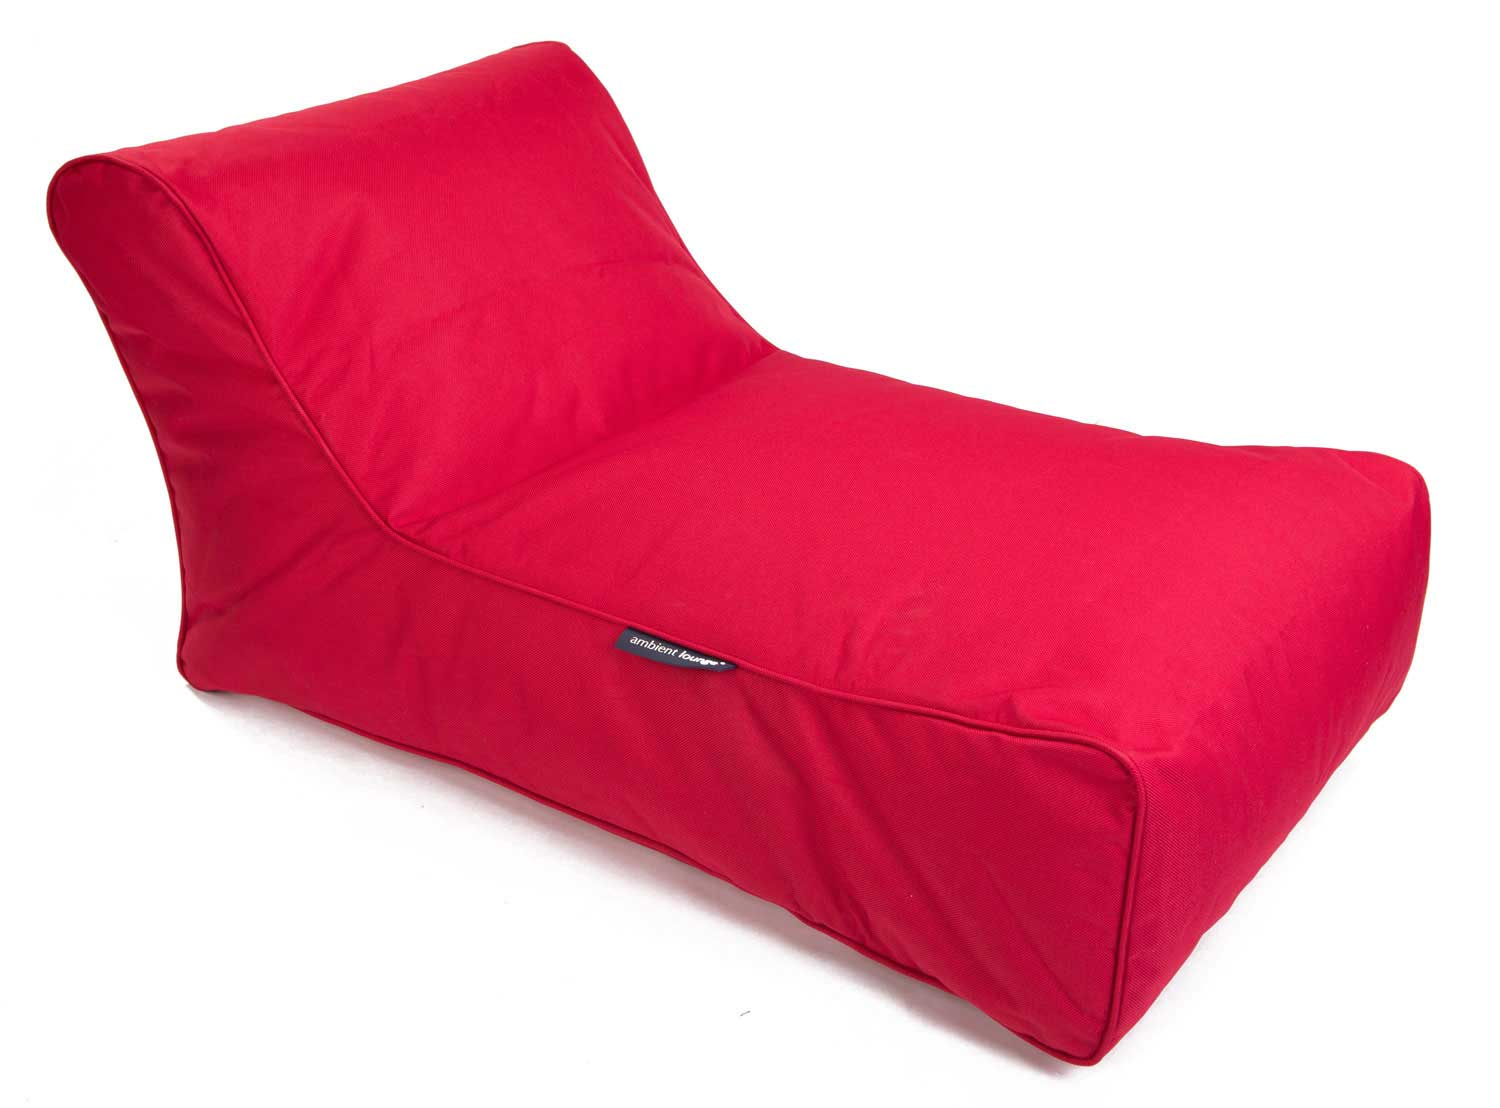 Studio Lounger Toro Red1